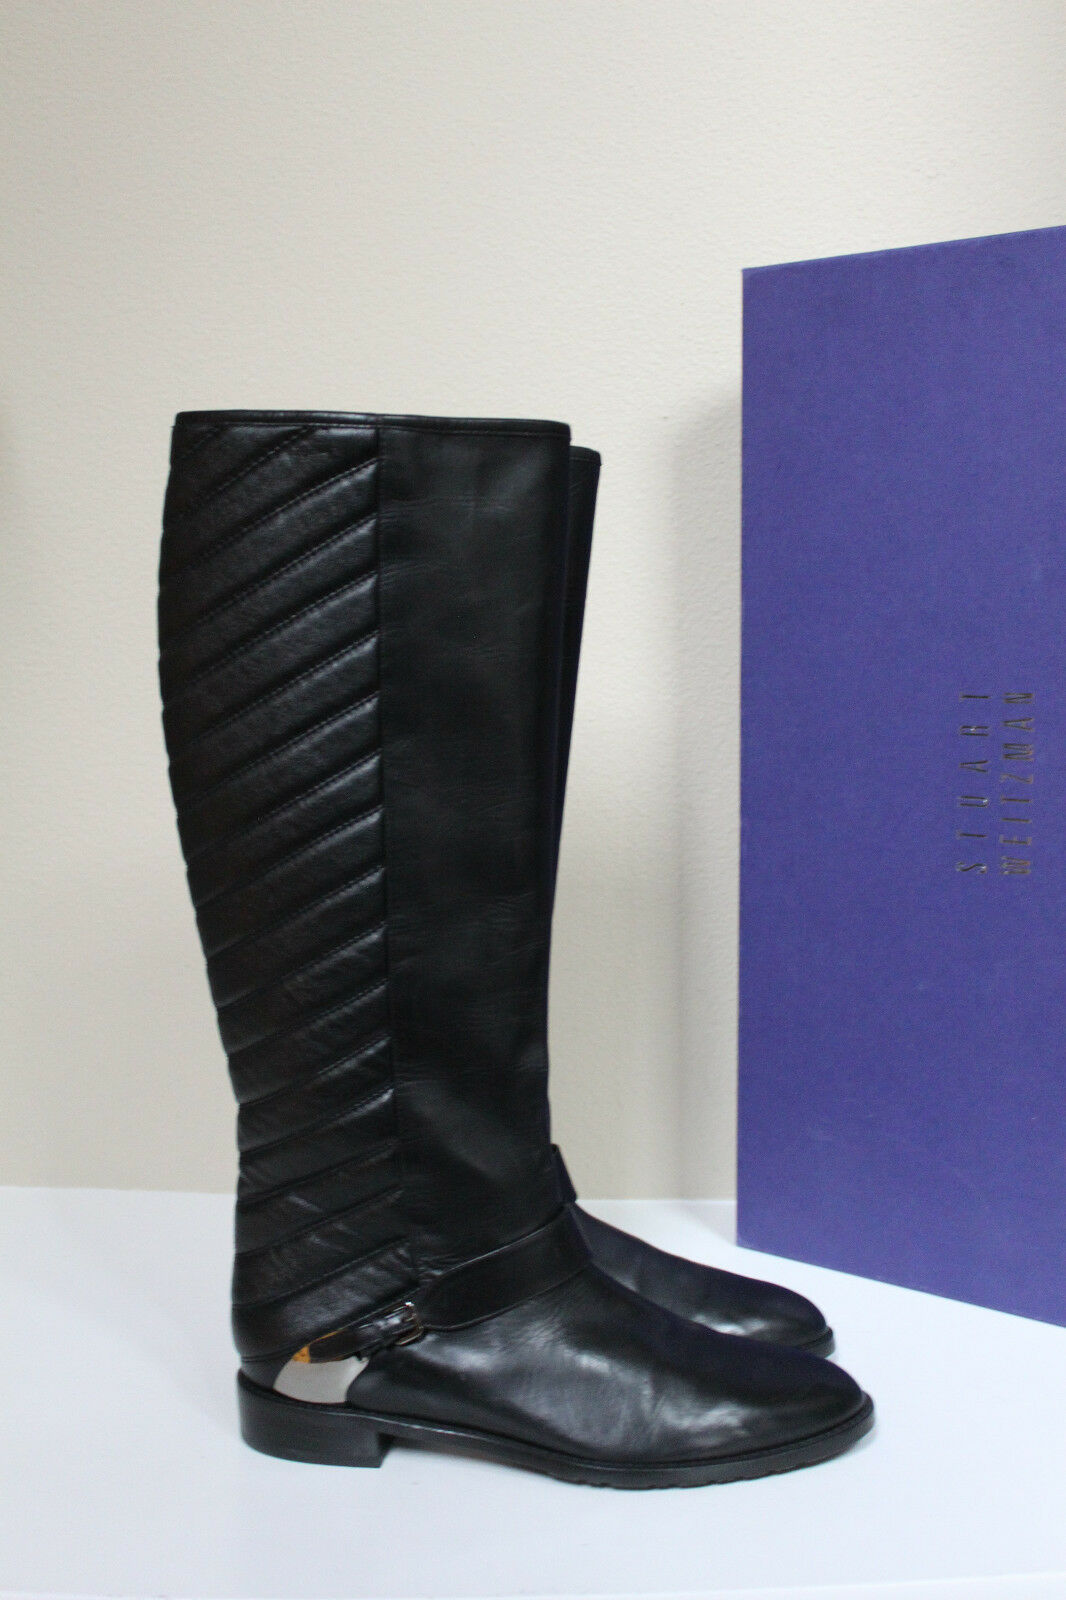 New 9 Stuart Weitzman Raceway Black Leather Over the Knee Wedge Heel boot Shoes